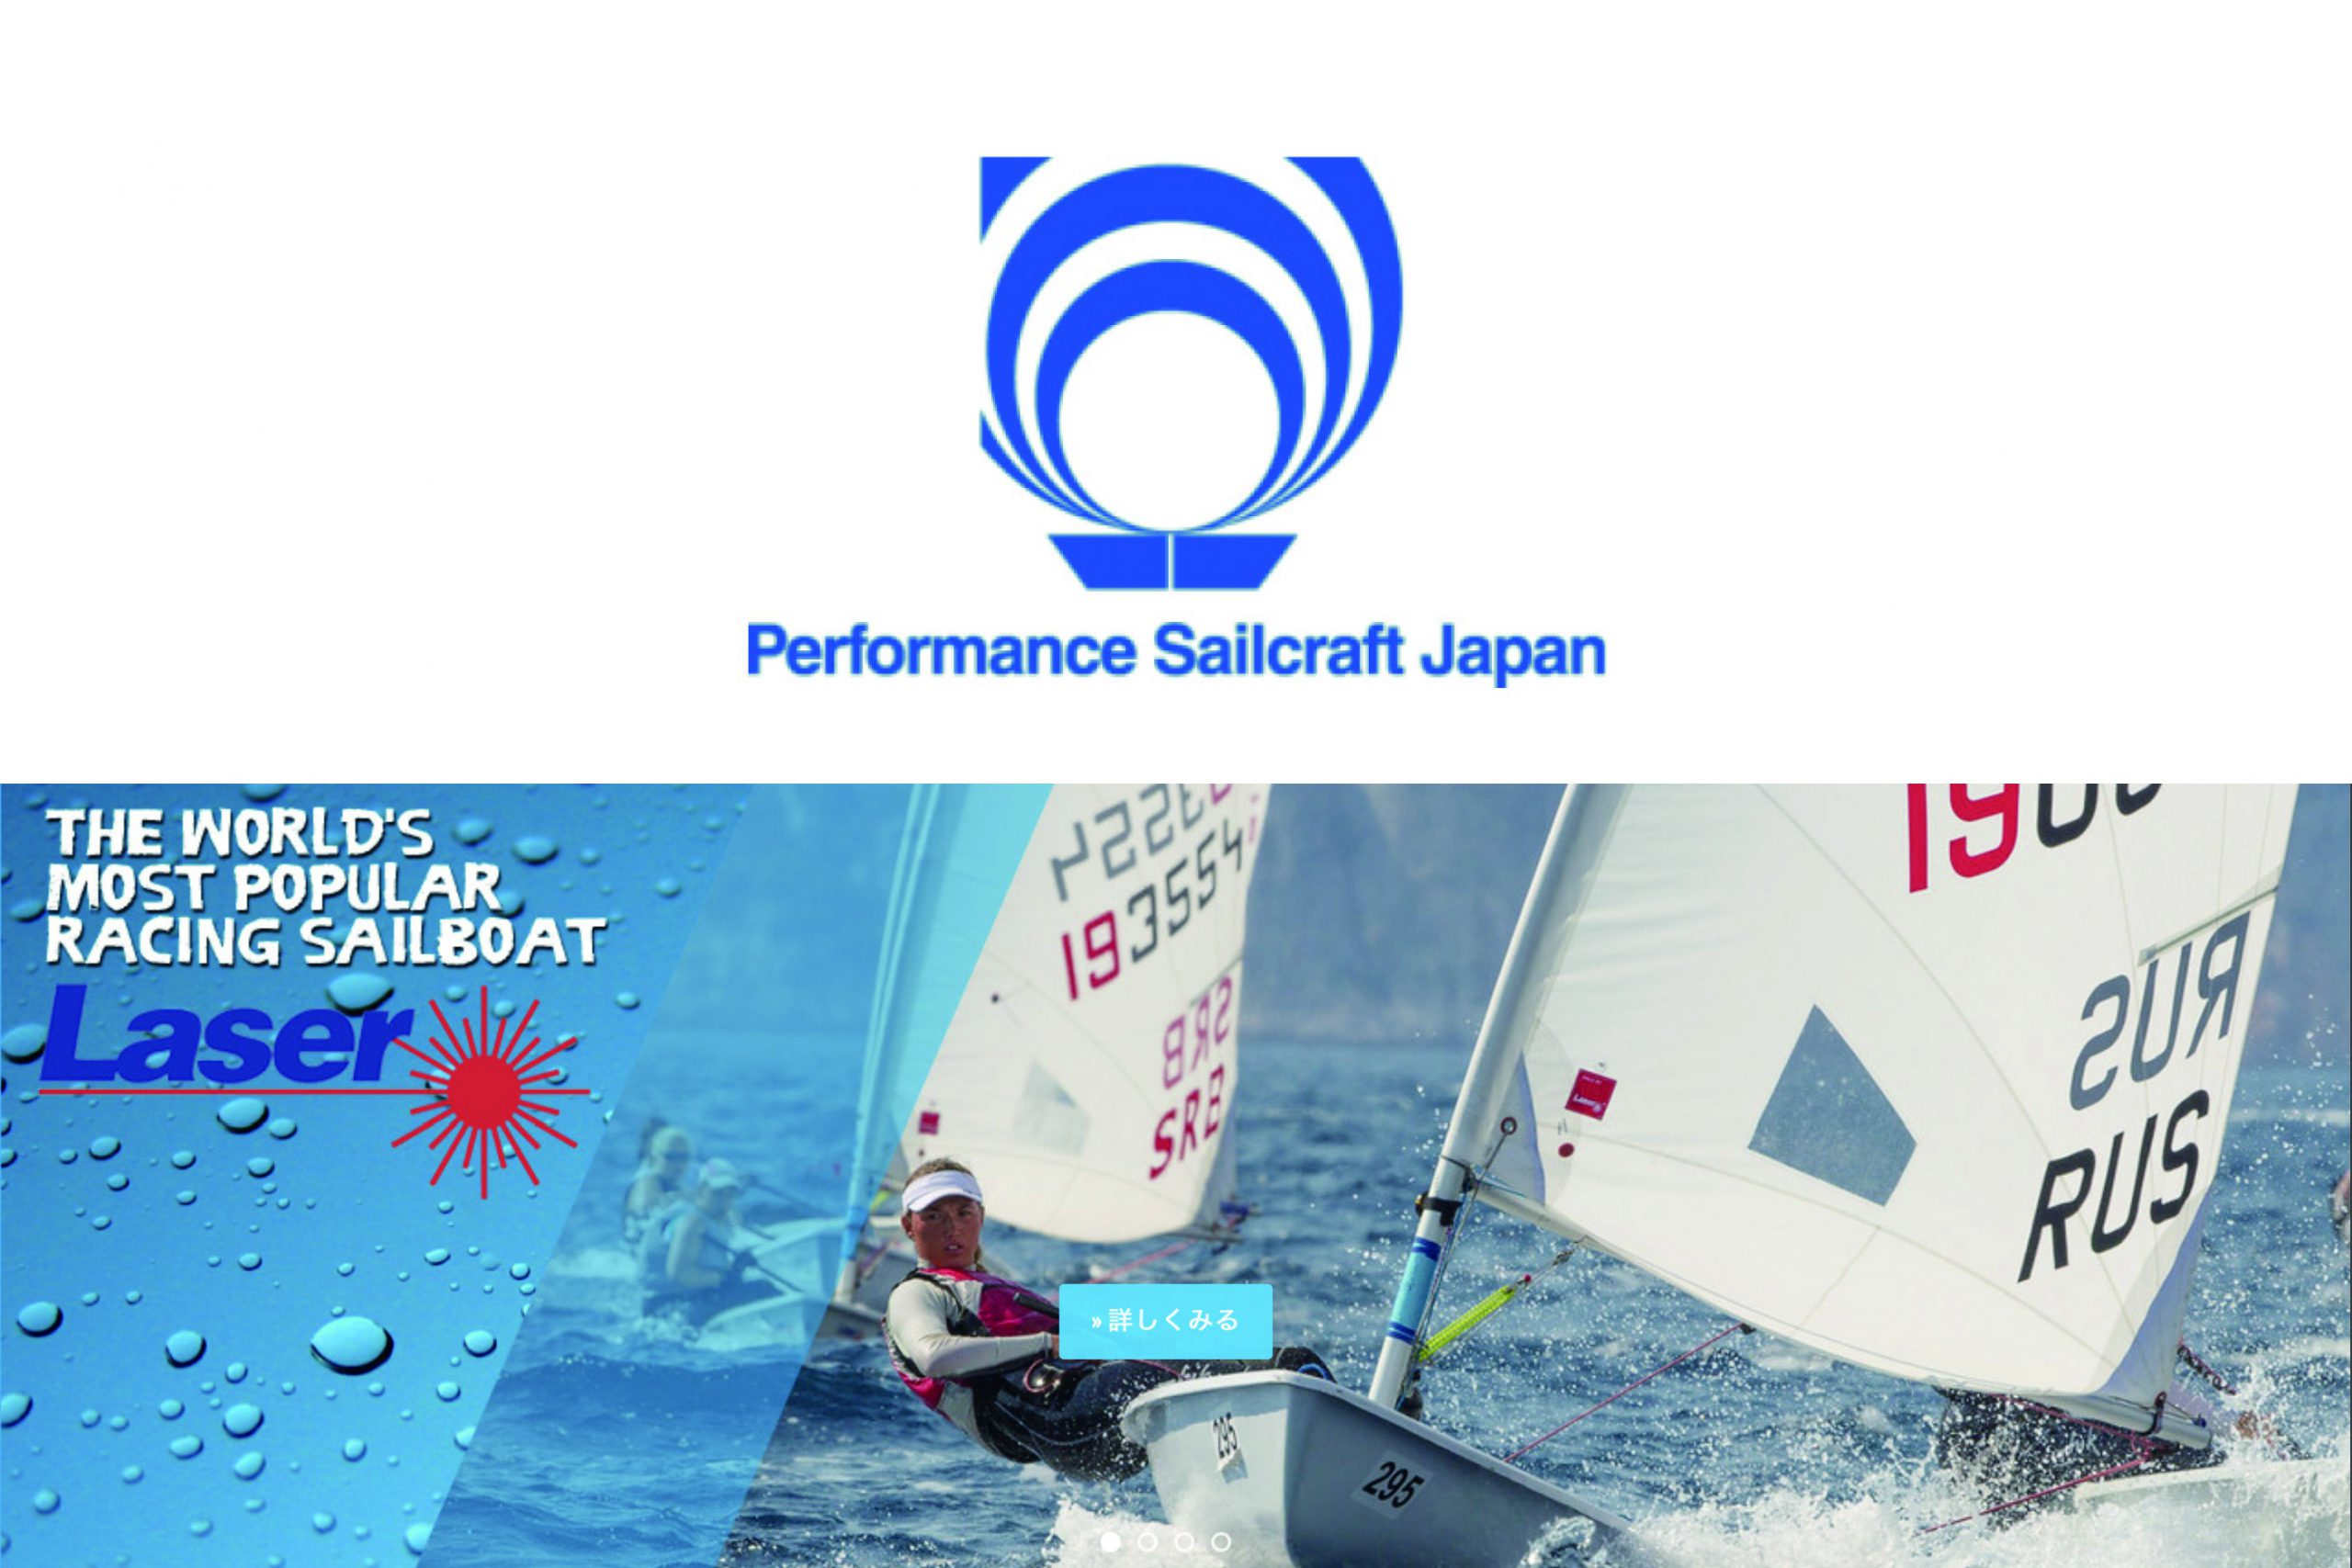 Performance Sailcraft Japan